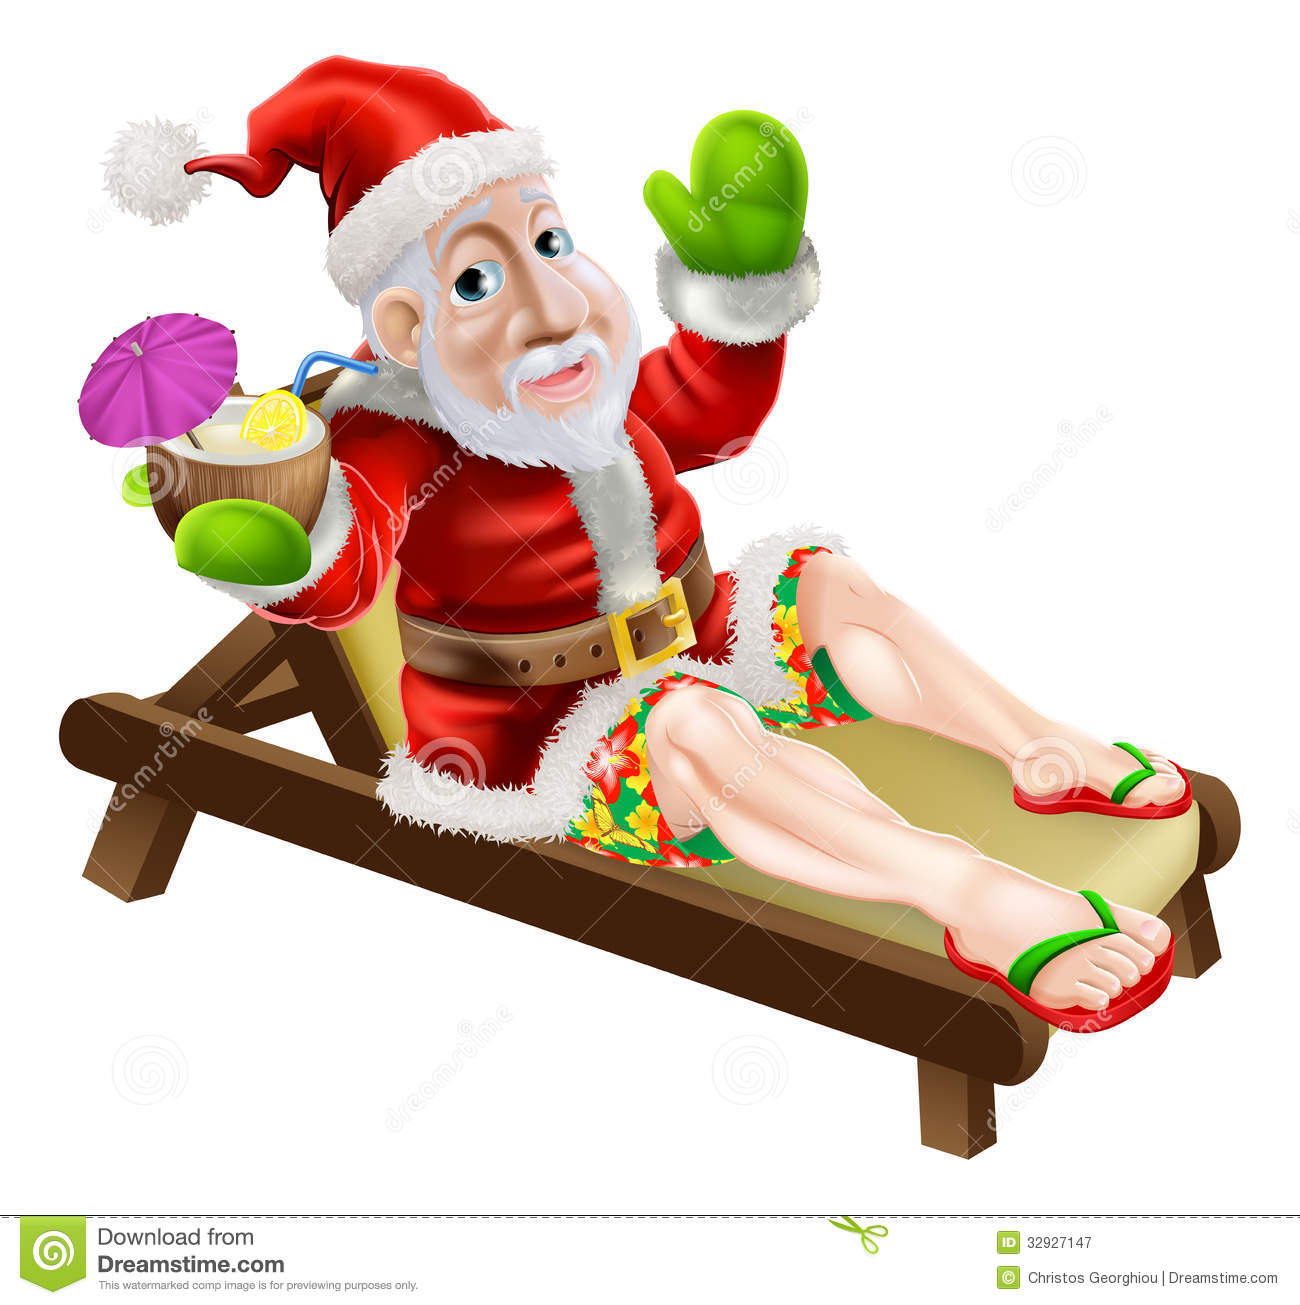 Santa Claus On A Hot Christmas Holiday Relaxing In A Sun Lounger On